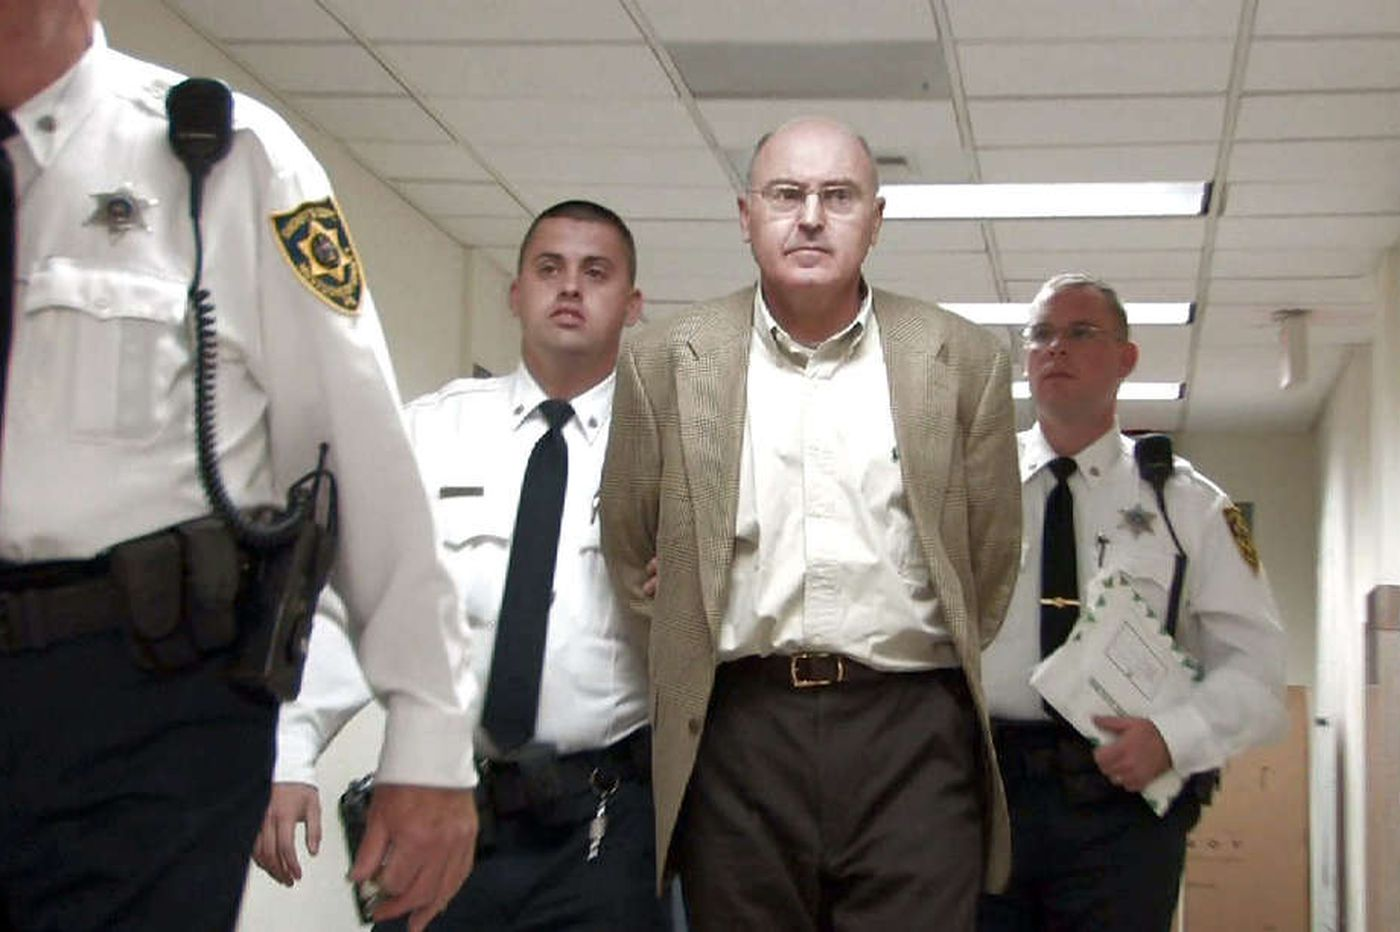 'There's no way he should leave the country:' Prosecutors, victim's family oppose Upper Merion wife-killer Rafael Robb's request to travel to Israel